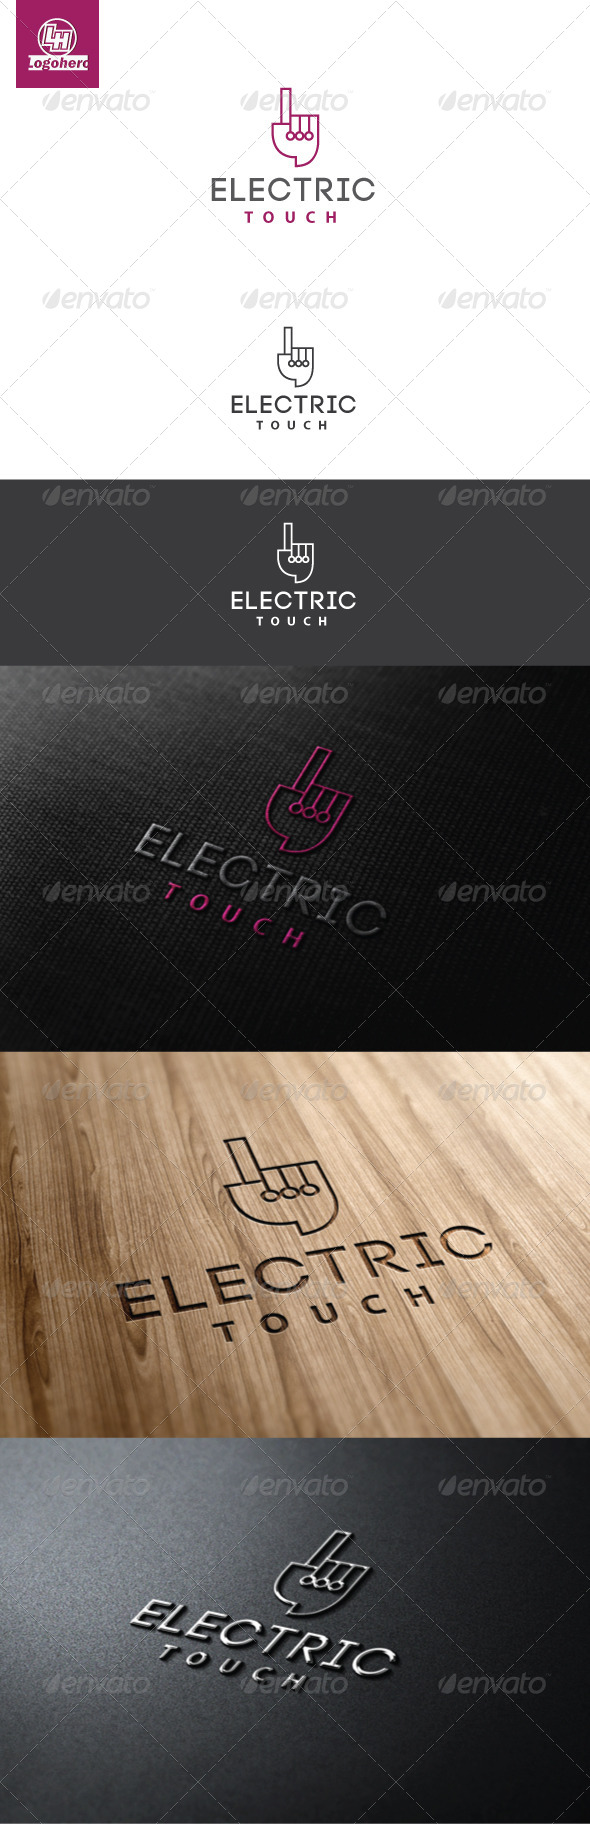 Electric Touch Logo Template - Symbols Logo Templates